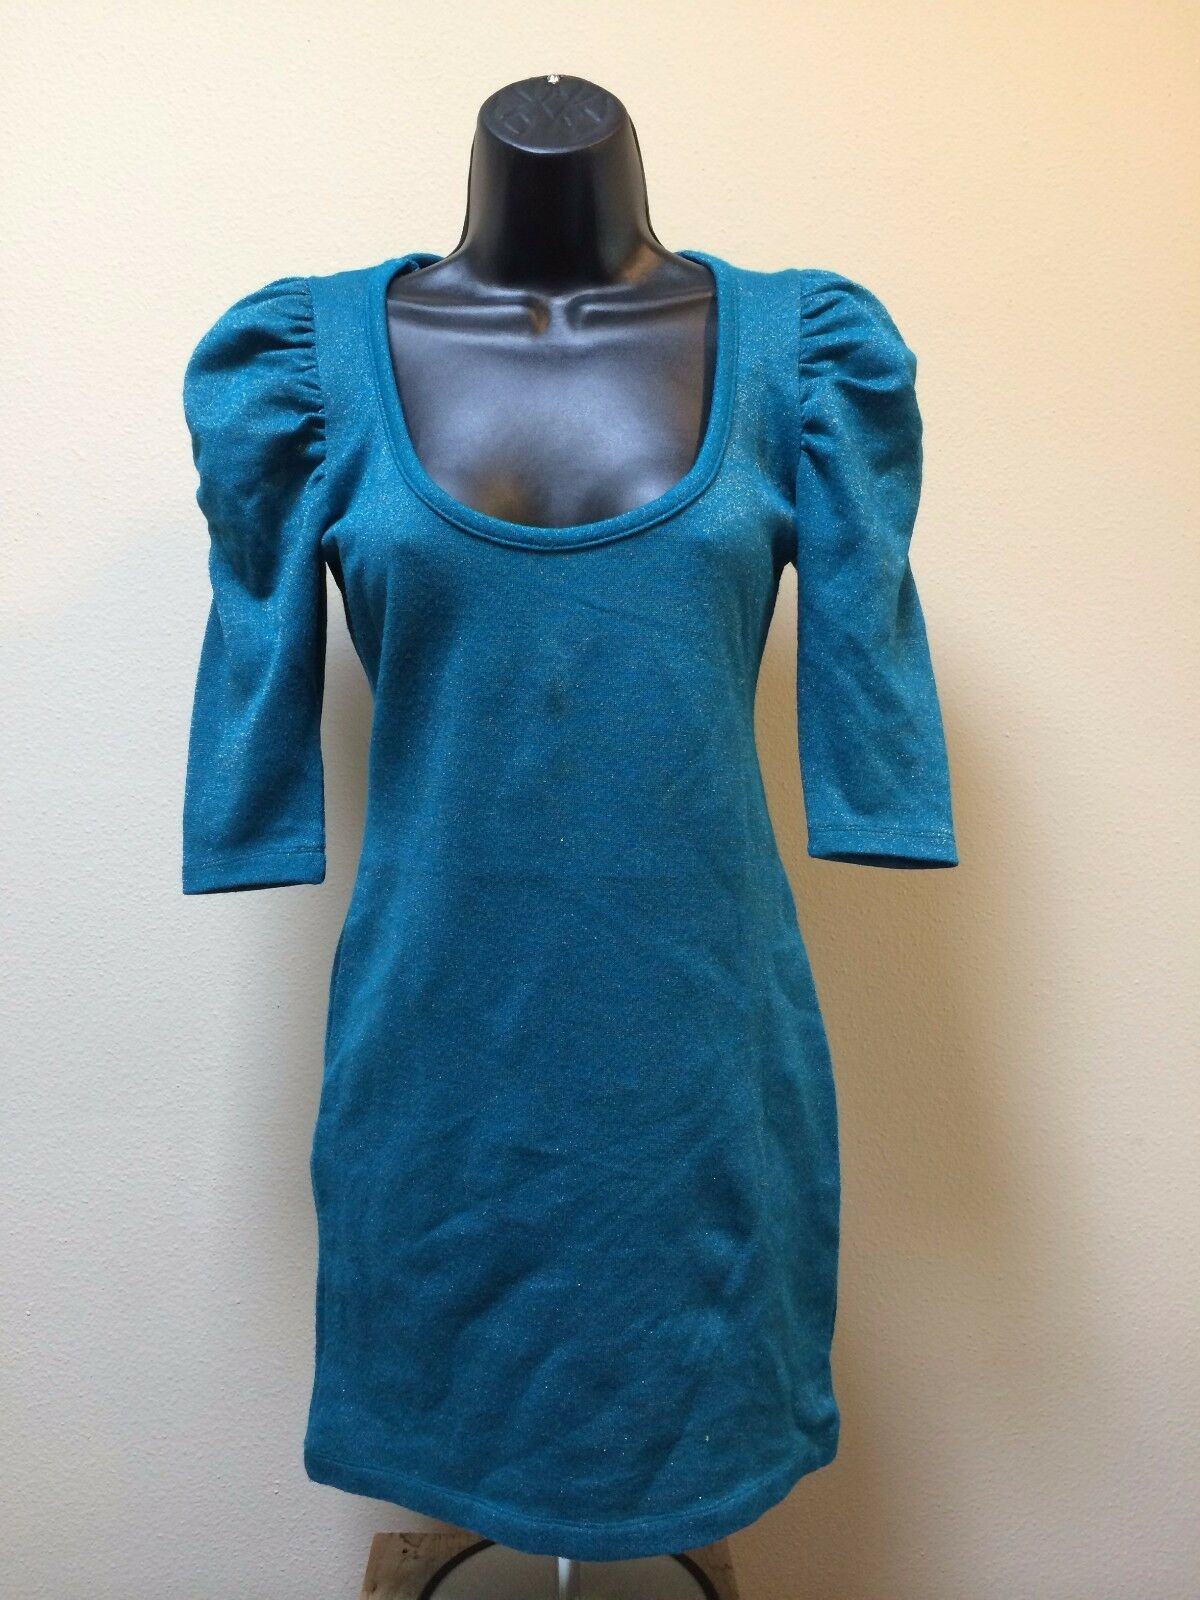 THE HELLERS SZ XS UK38 Designer Bodycon Teal shortsleeve Mini Dress stretchy